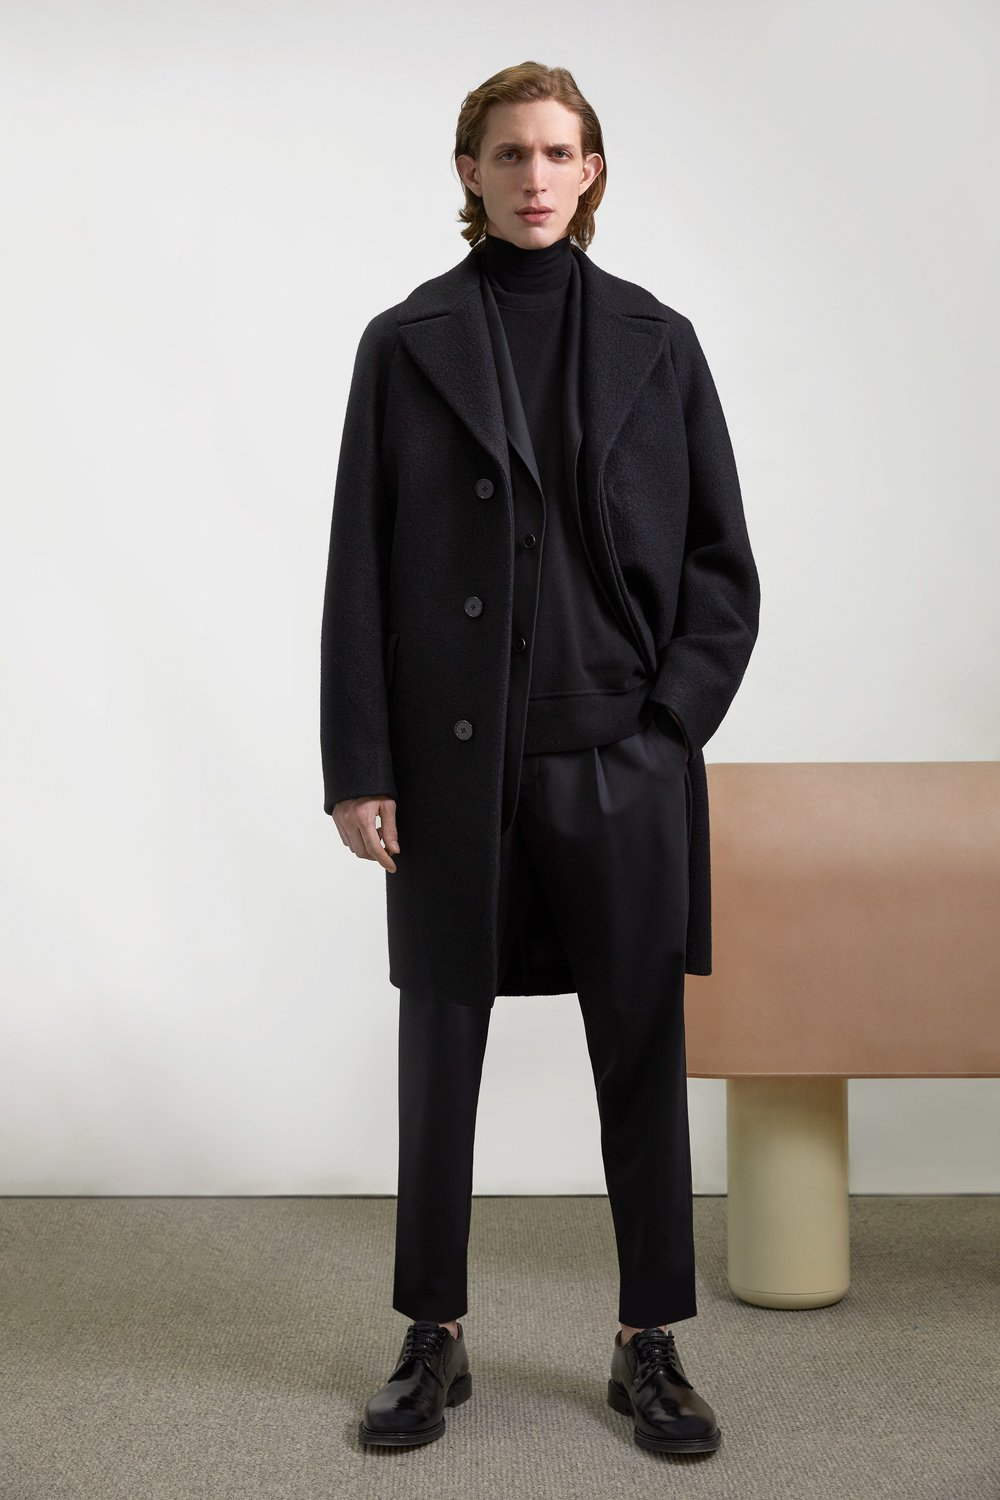 Theory Fall 2019 Menswear